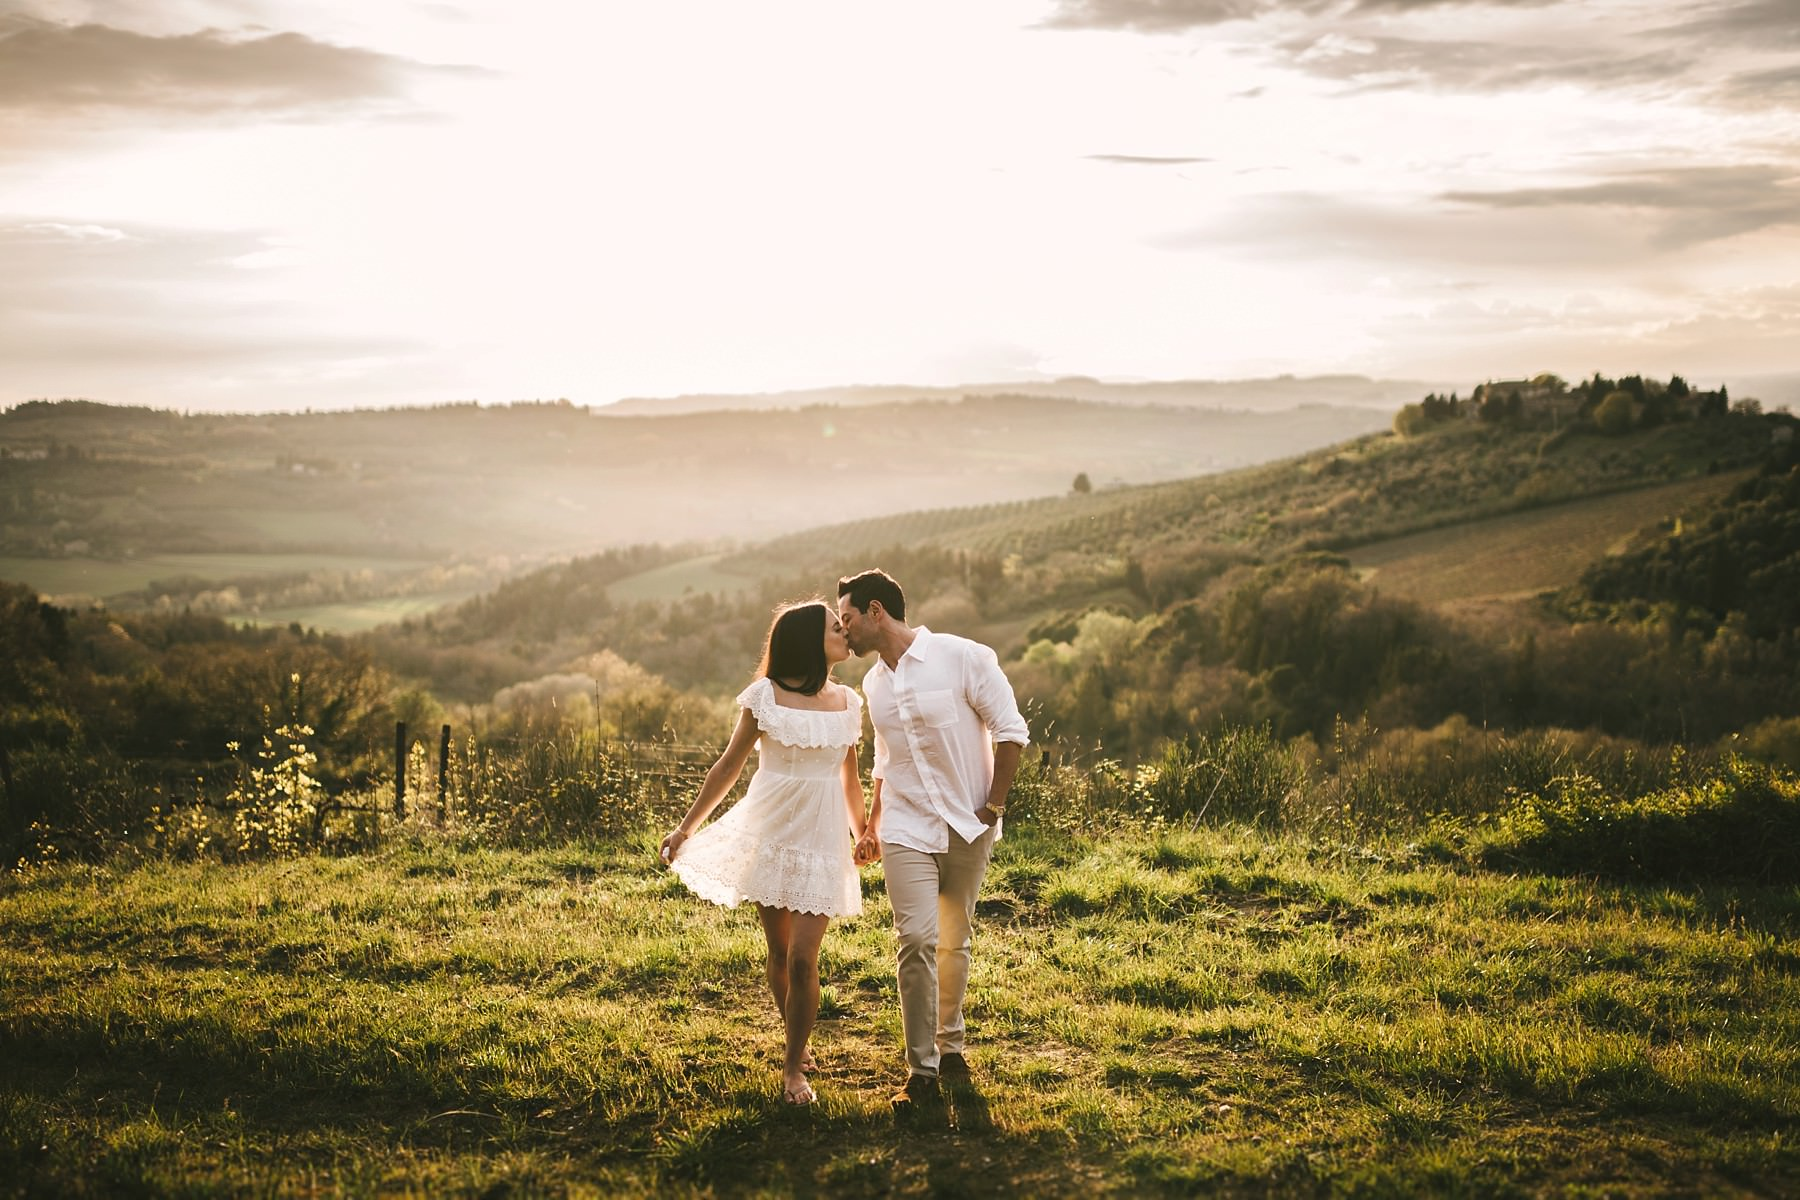 Superb ending of for this very special shooting of Michelle and Bret's engagement pre-wedding photo shoot in breathtaking scenery of the Tuscany Chianti hills countryside